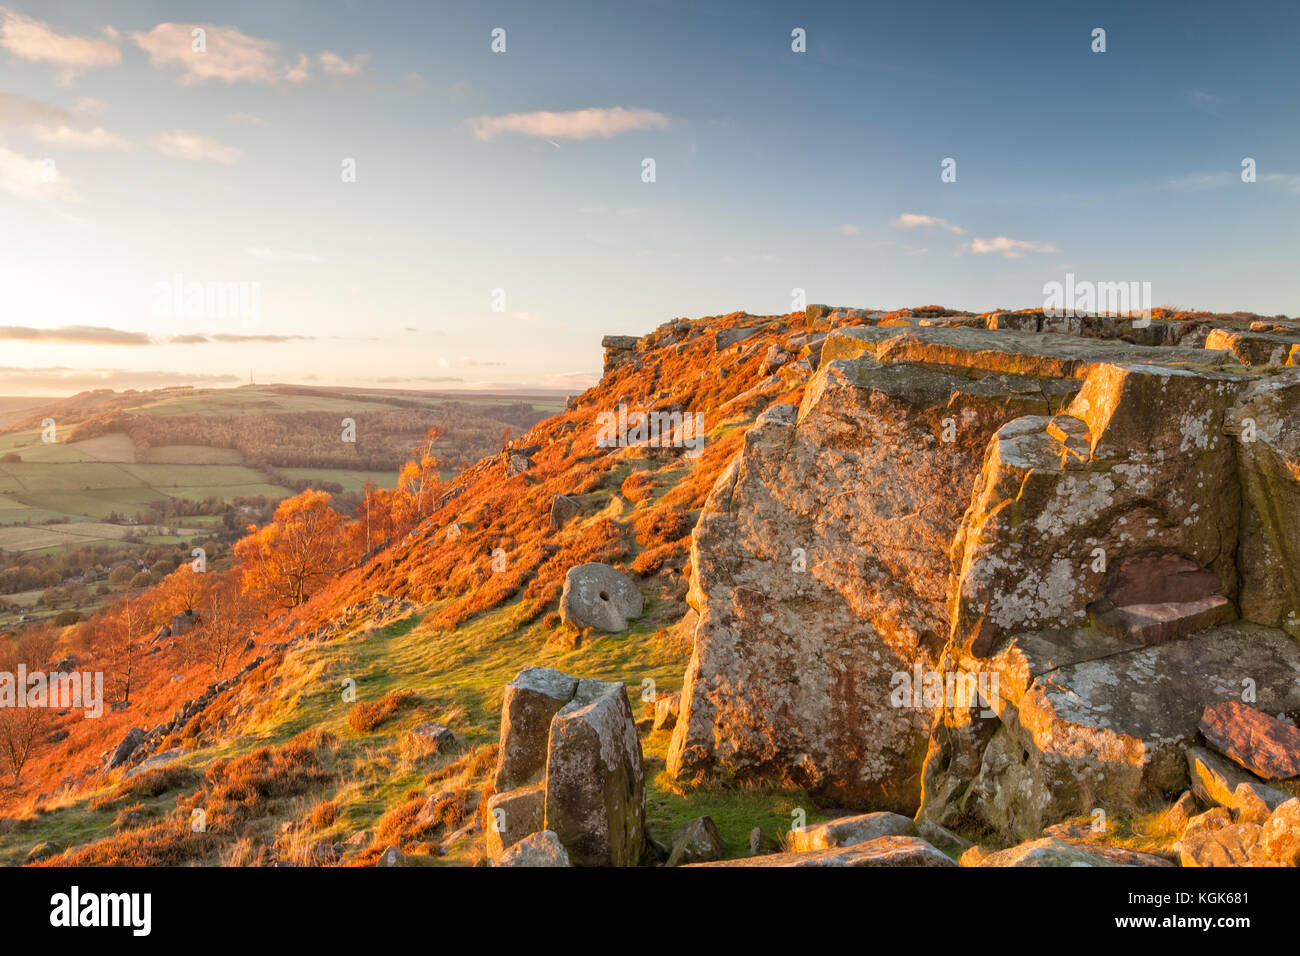 sunset over Curbar Edge, peak District National Park, Derbyshire, England - Stock Image